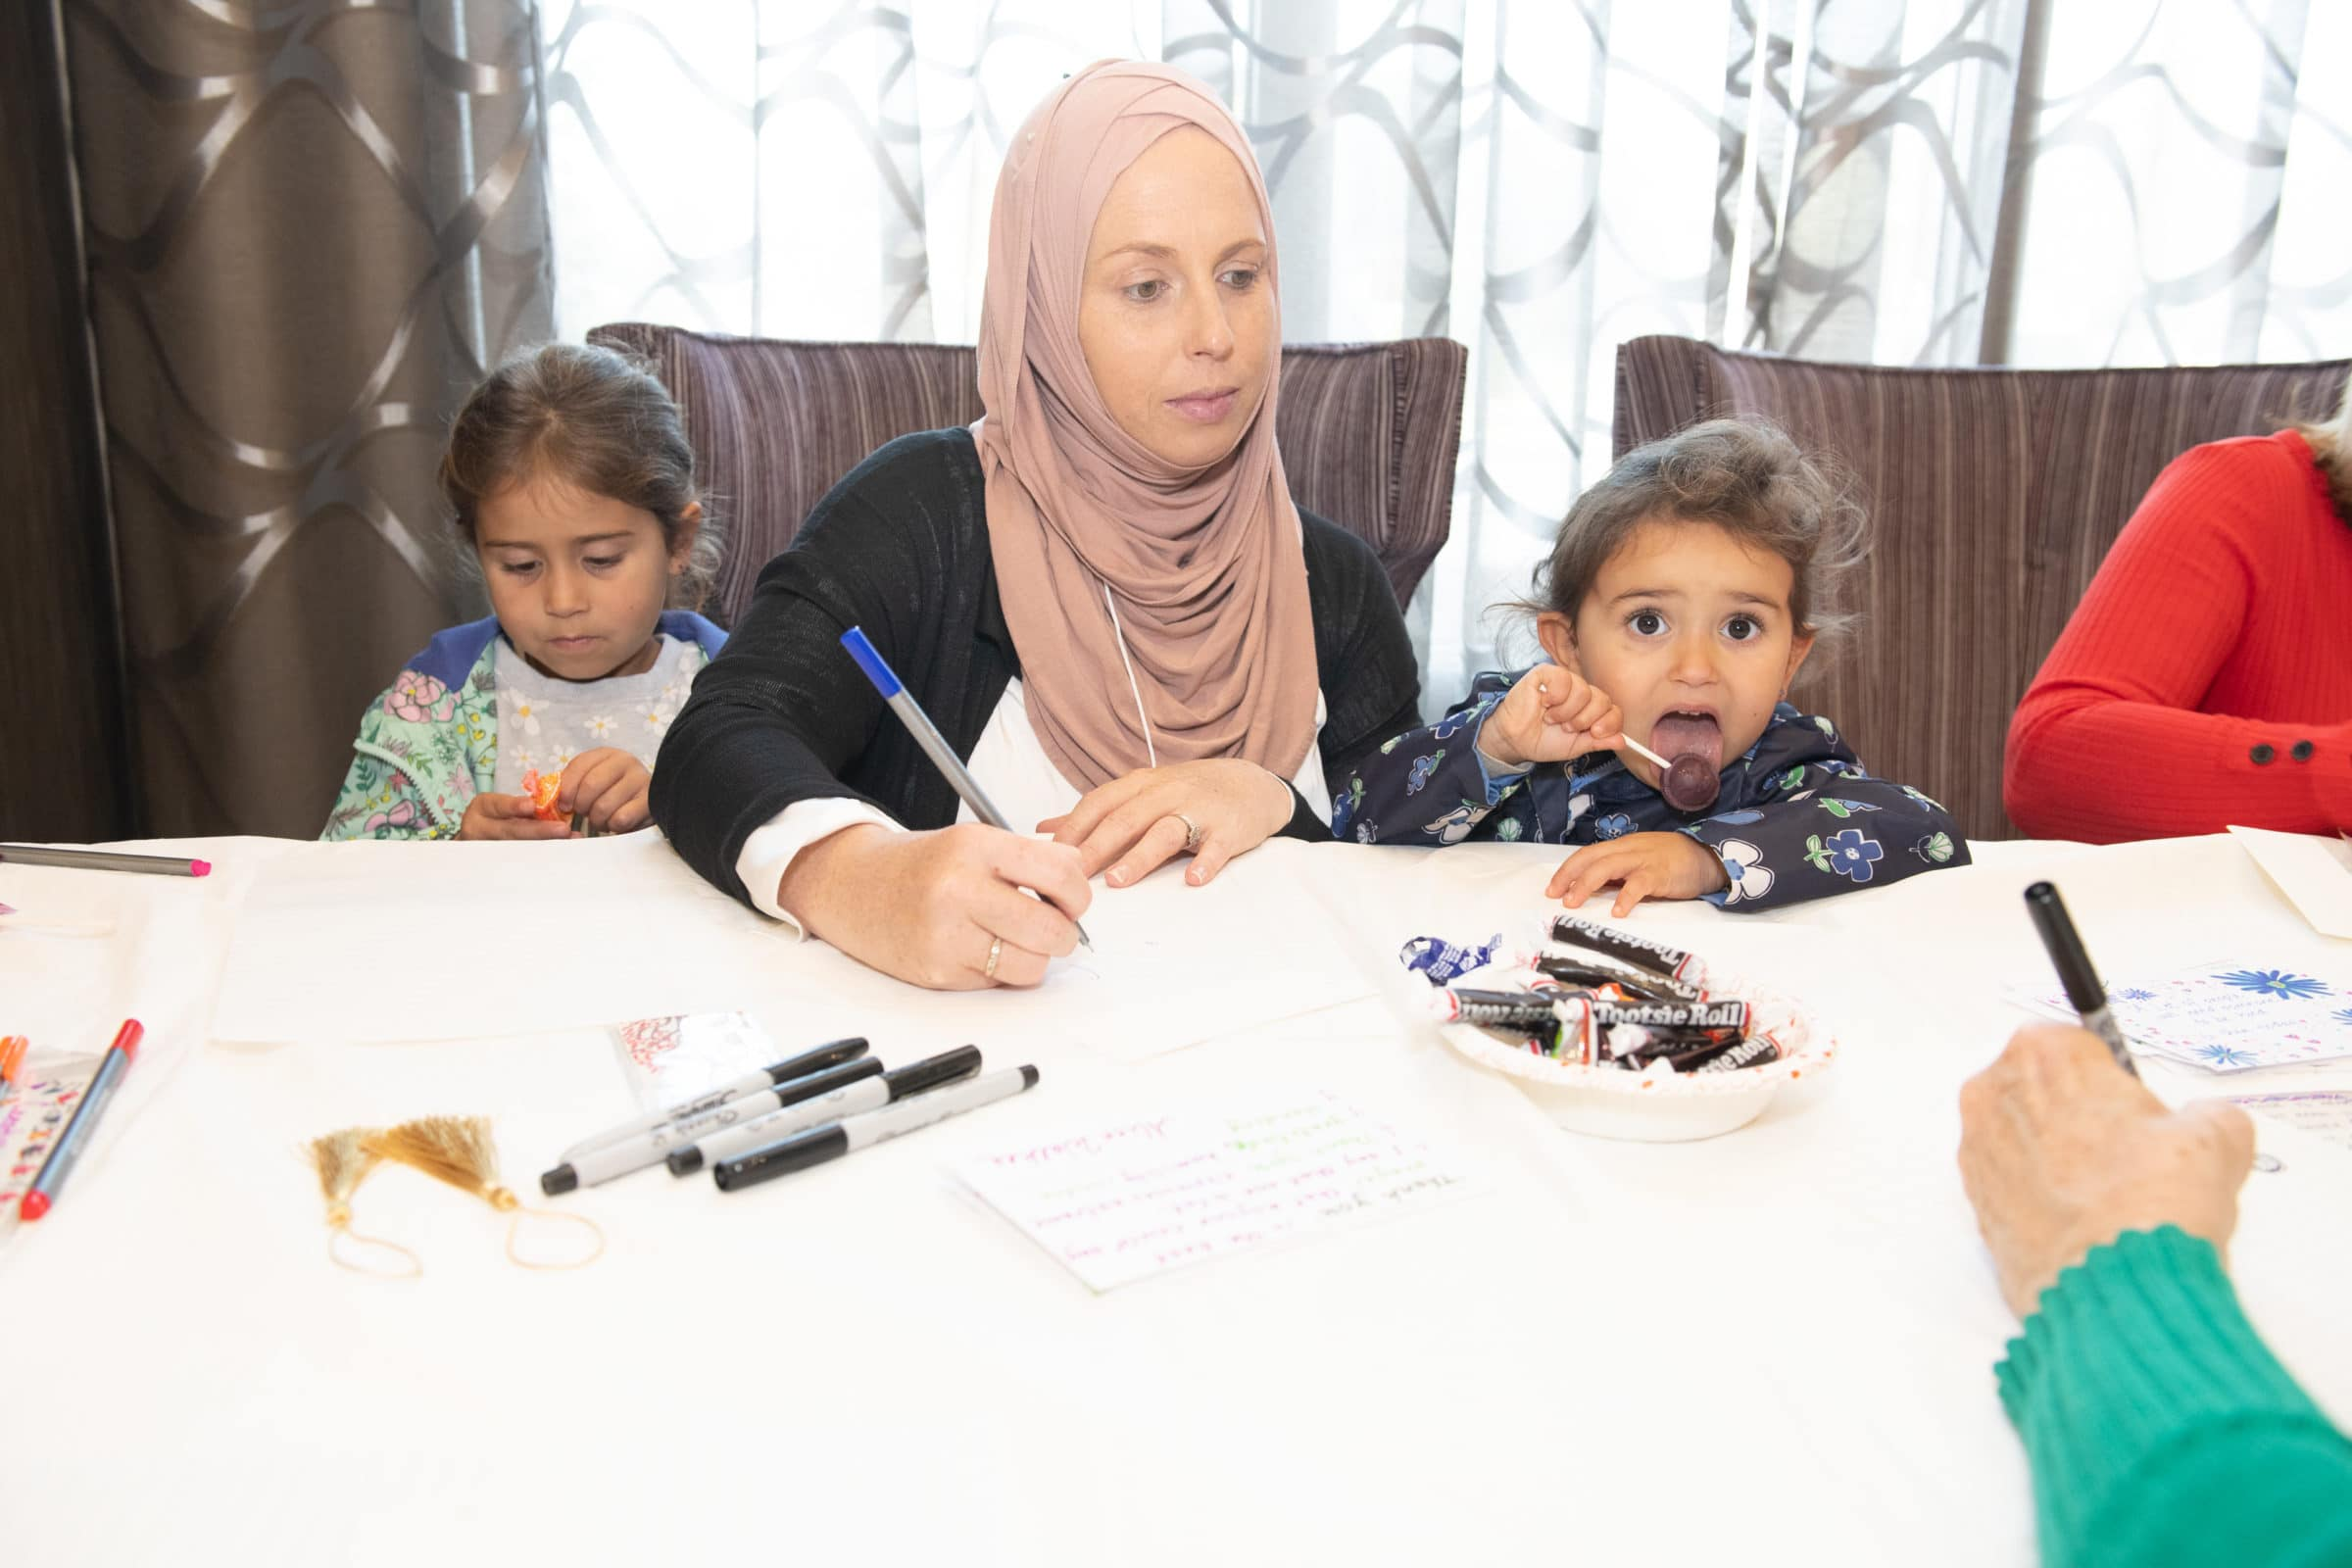 woman in hijab seated between two young girls